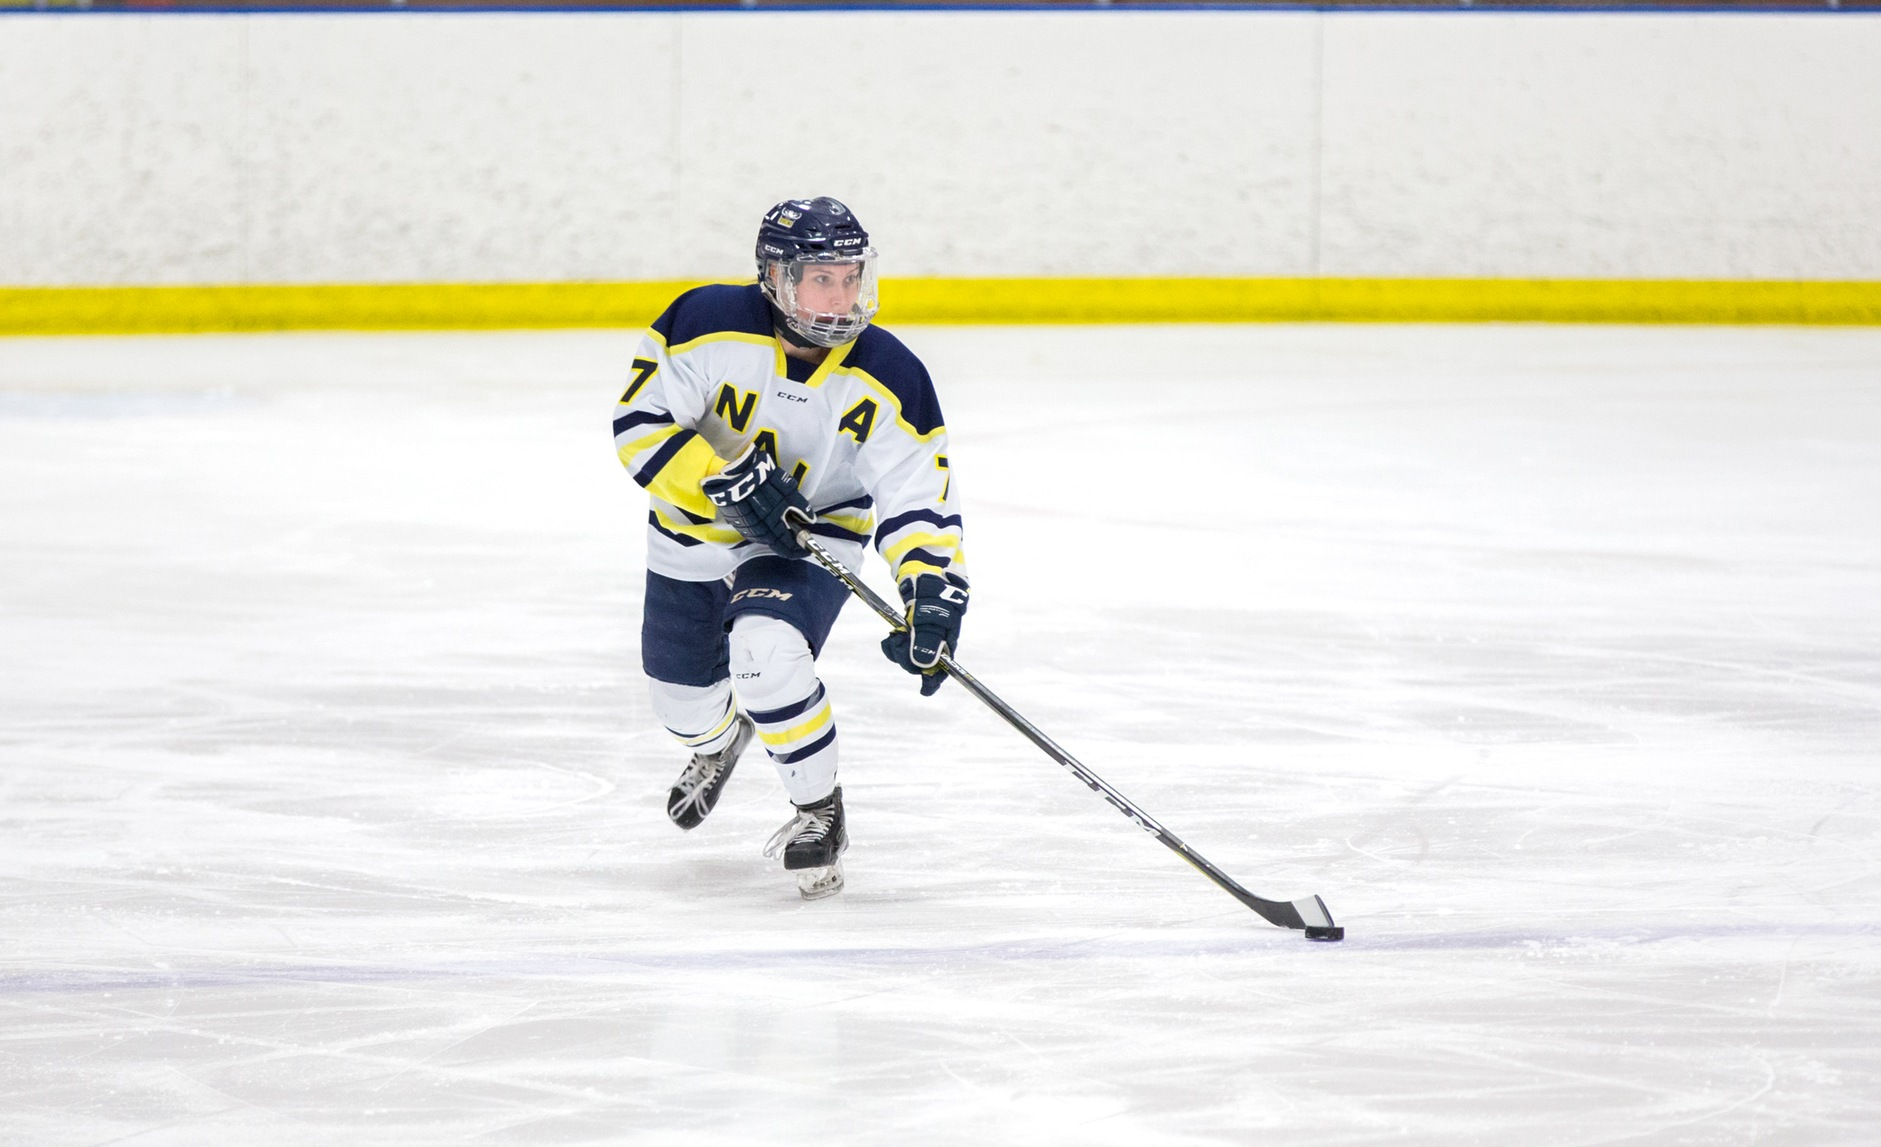 Ooks come from behind to defeat Trojans 2-1